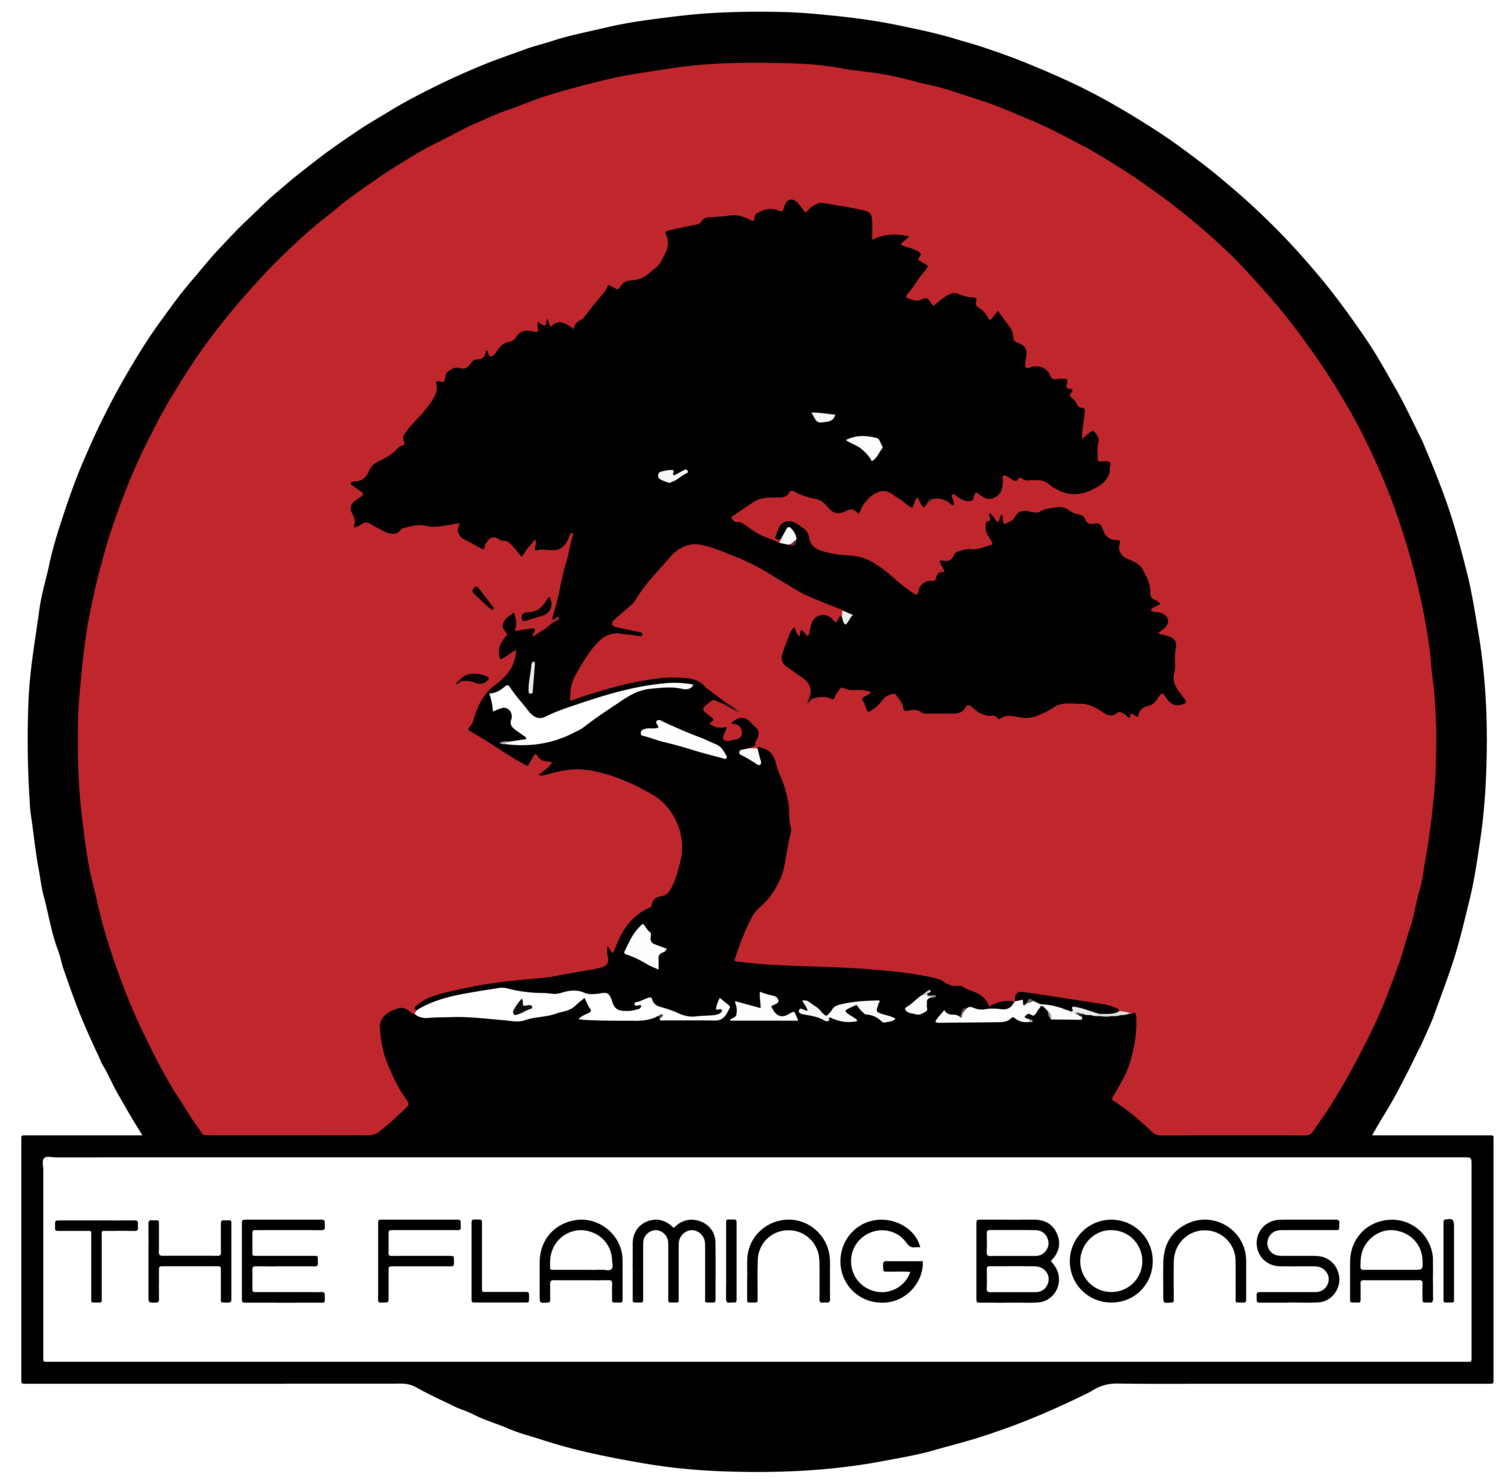 The Flaming Bonsai